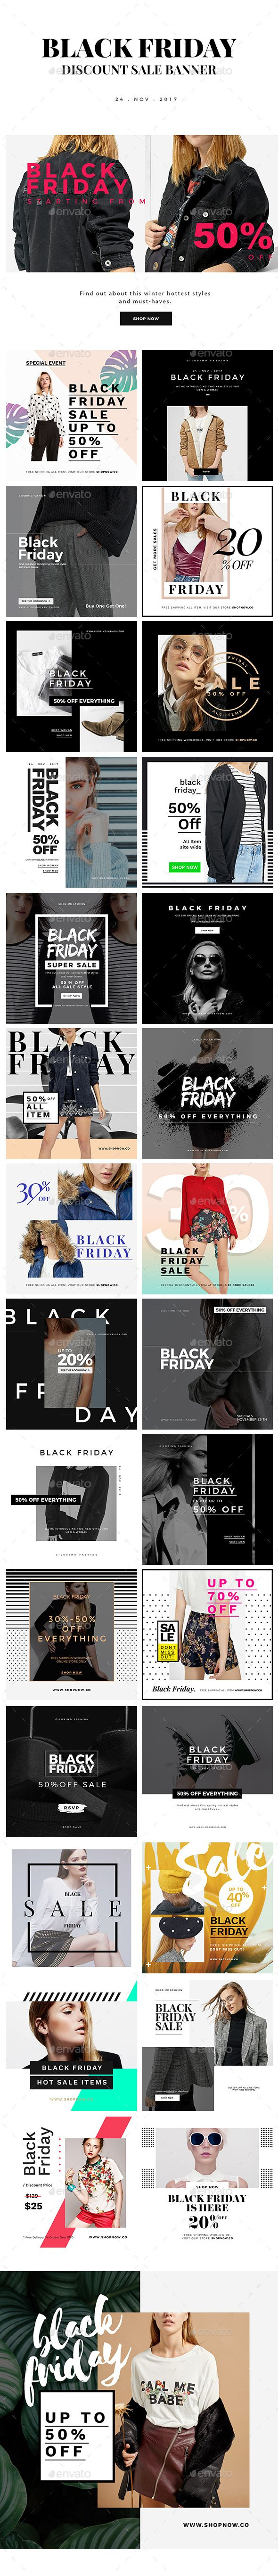 Black Friday Discount Sale Instagram Banner — Photoshop PSD #brand #templates • Available here ➝ https://graphicriver.net/item/black-friday-discount-sale-instagram-banner/20898140?ref=pxcr